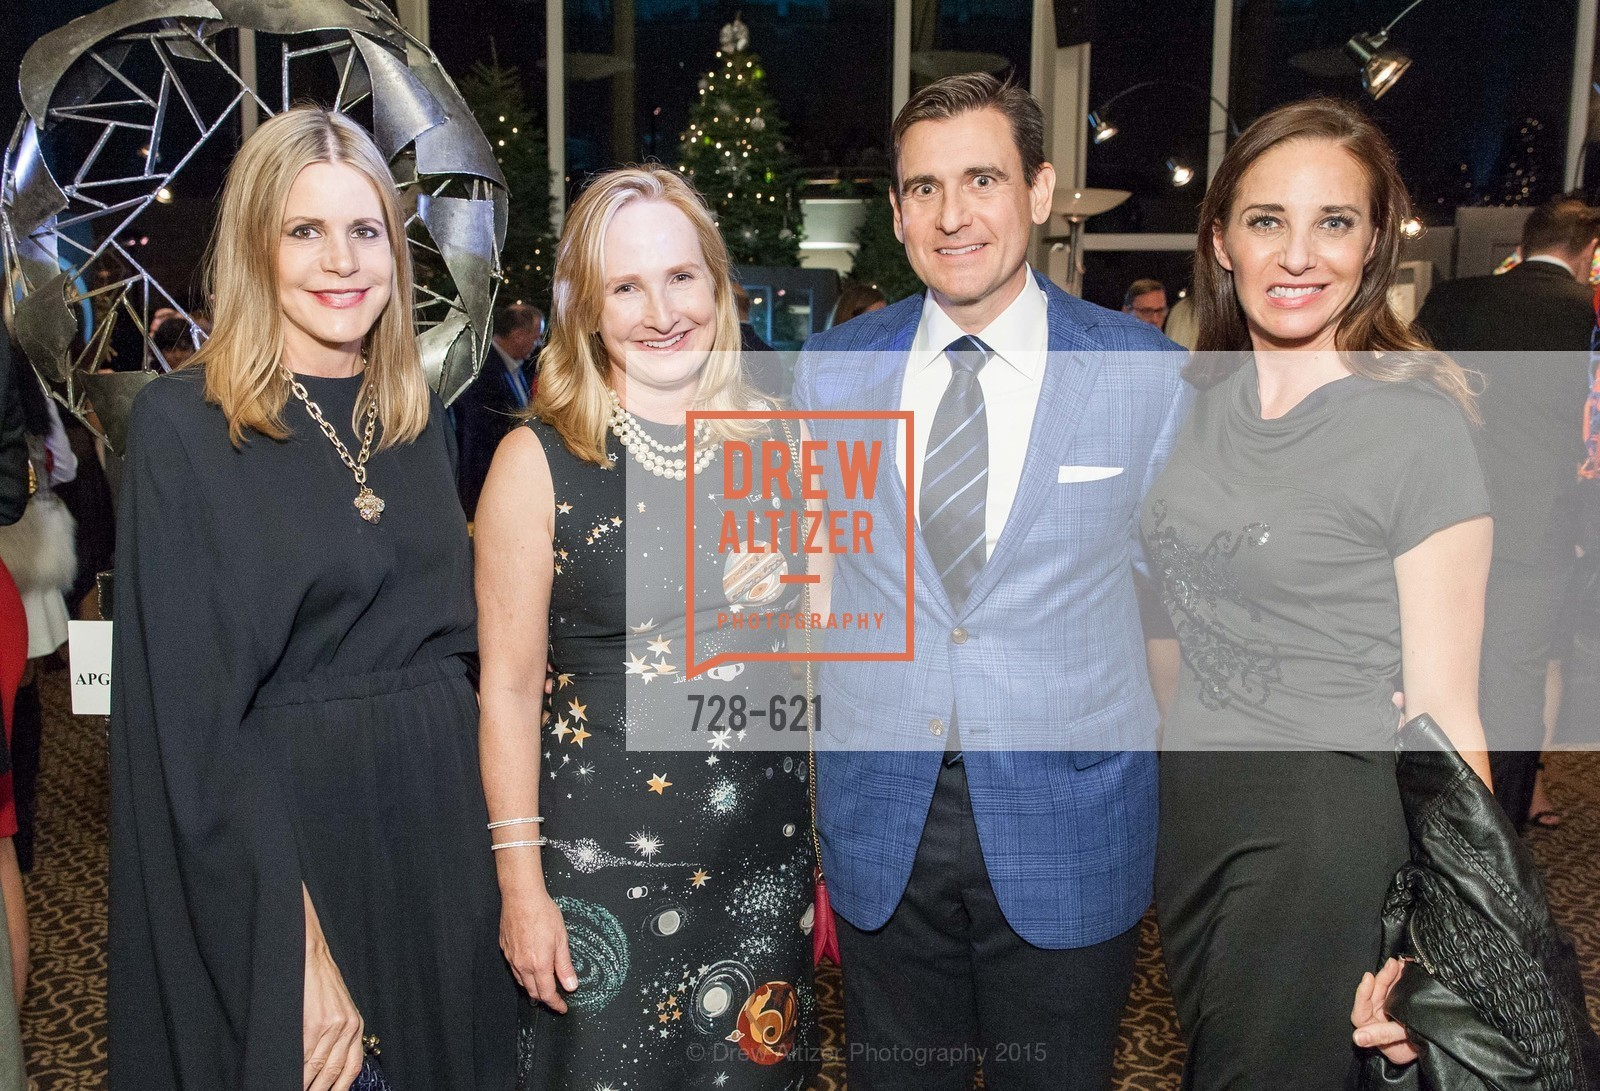 Mary Beth Shimmon, Anne Pedrero, Robert Pedrero, Kimberly Veley, Children of Shelters' Jingle and Mingle, Golden Gate Club. 135 Fisher Loop, December 3rd, 2015,Drew Altizer, Drew Altizer Photography, full-service agency, private events, San Francisco photographer, photographer california